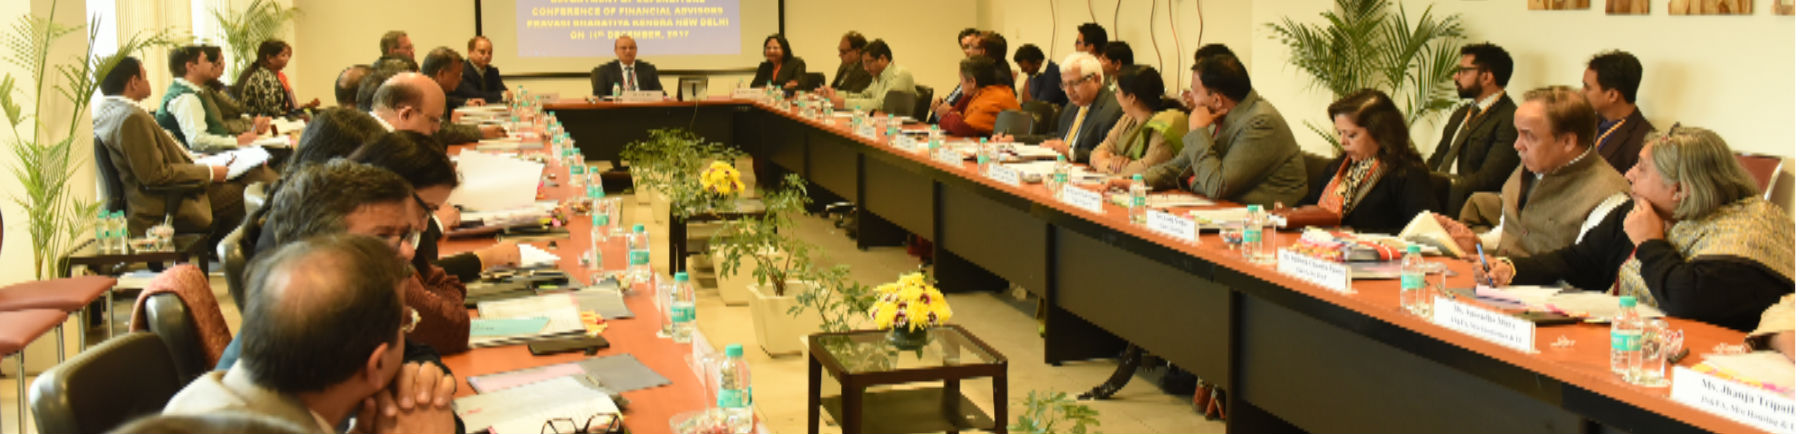 Conference of Financial Advisors Pravasi Bharatiya Kendra New Delhi on 14th December 2017